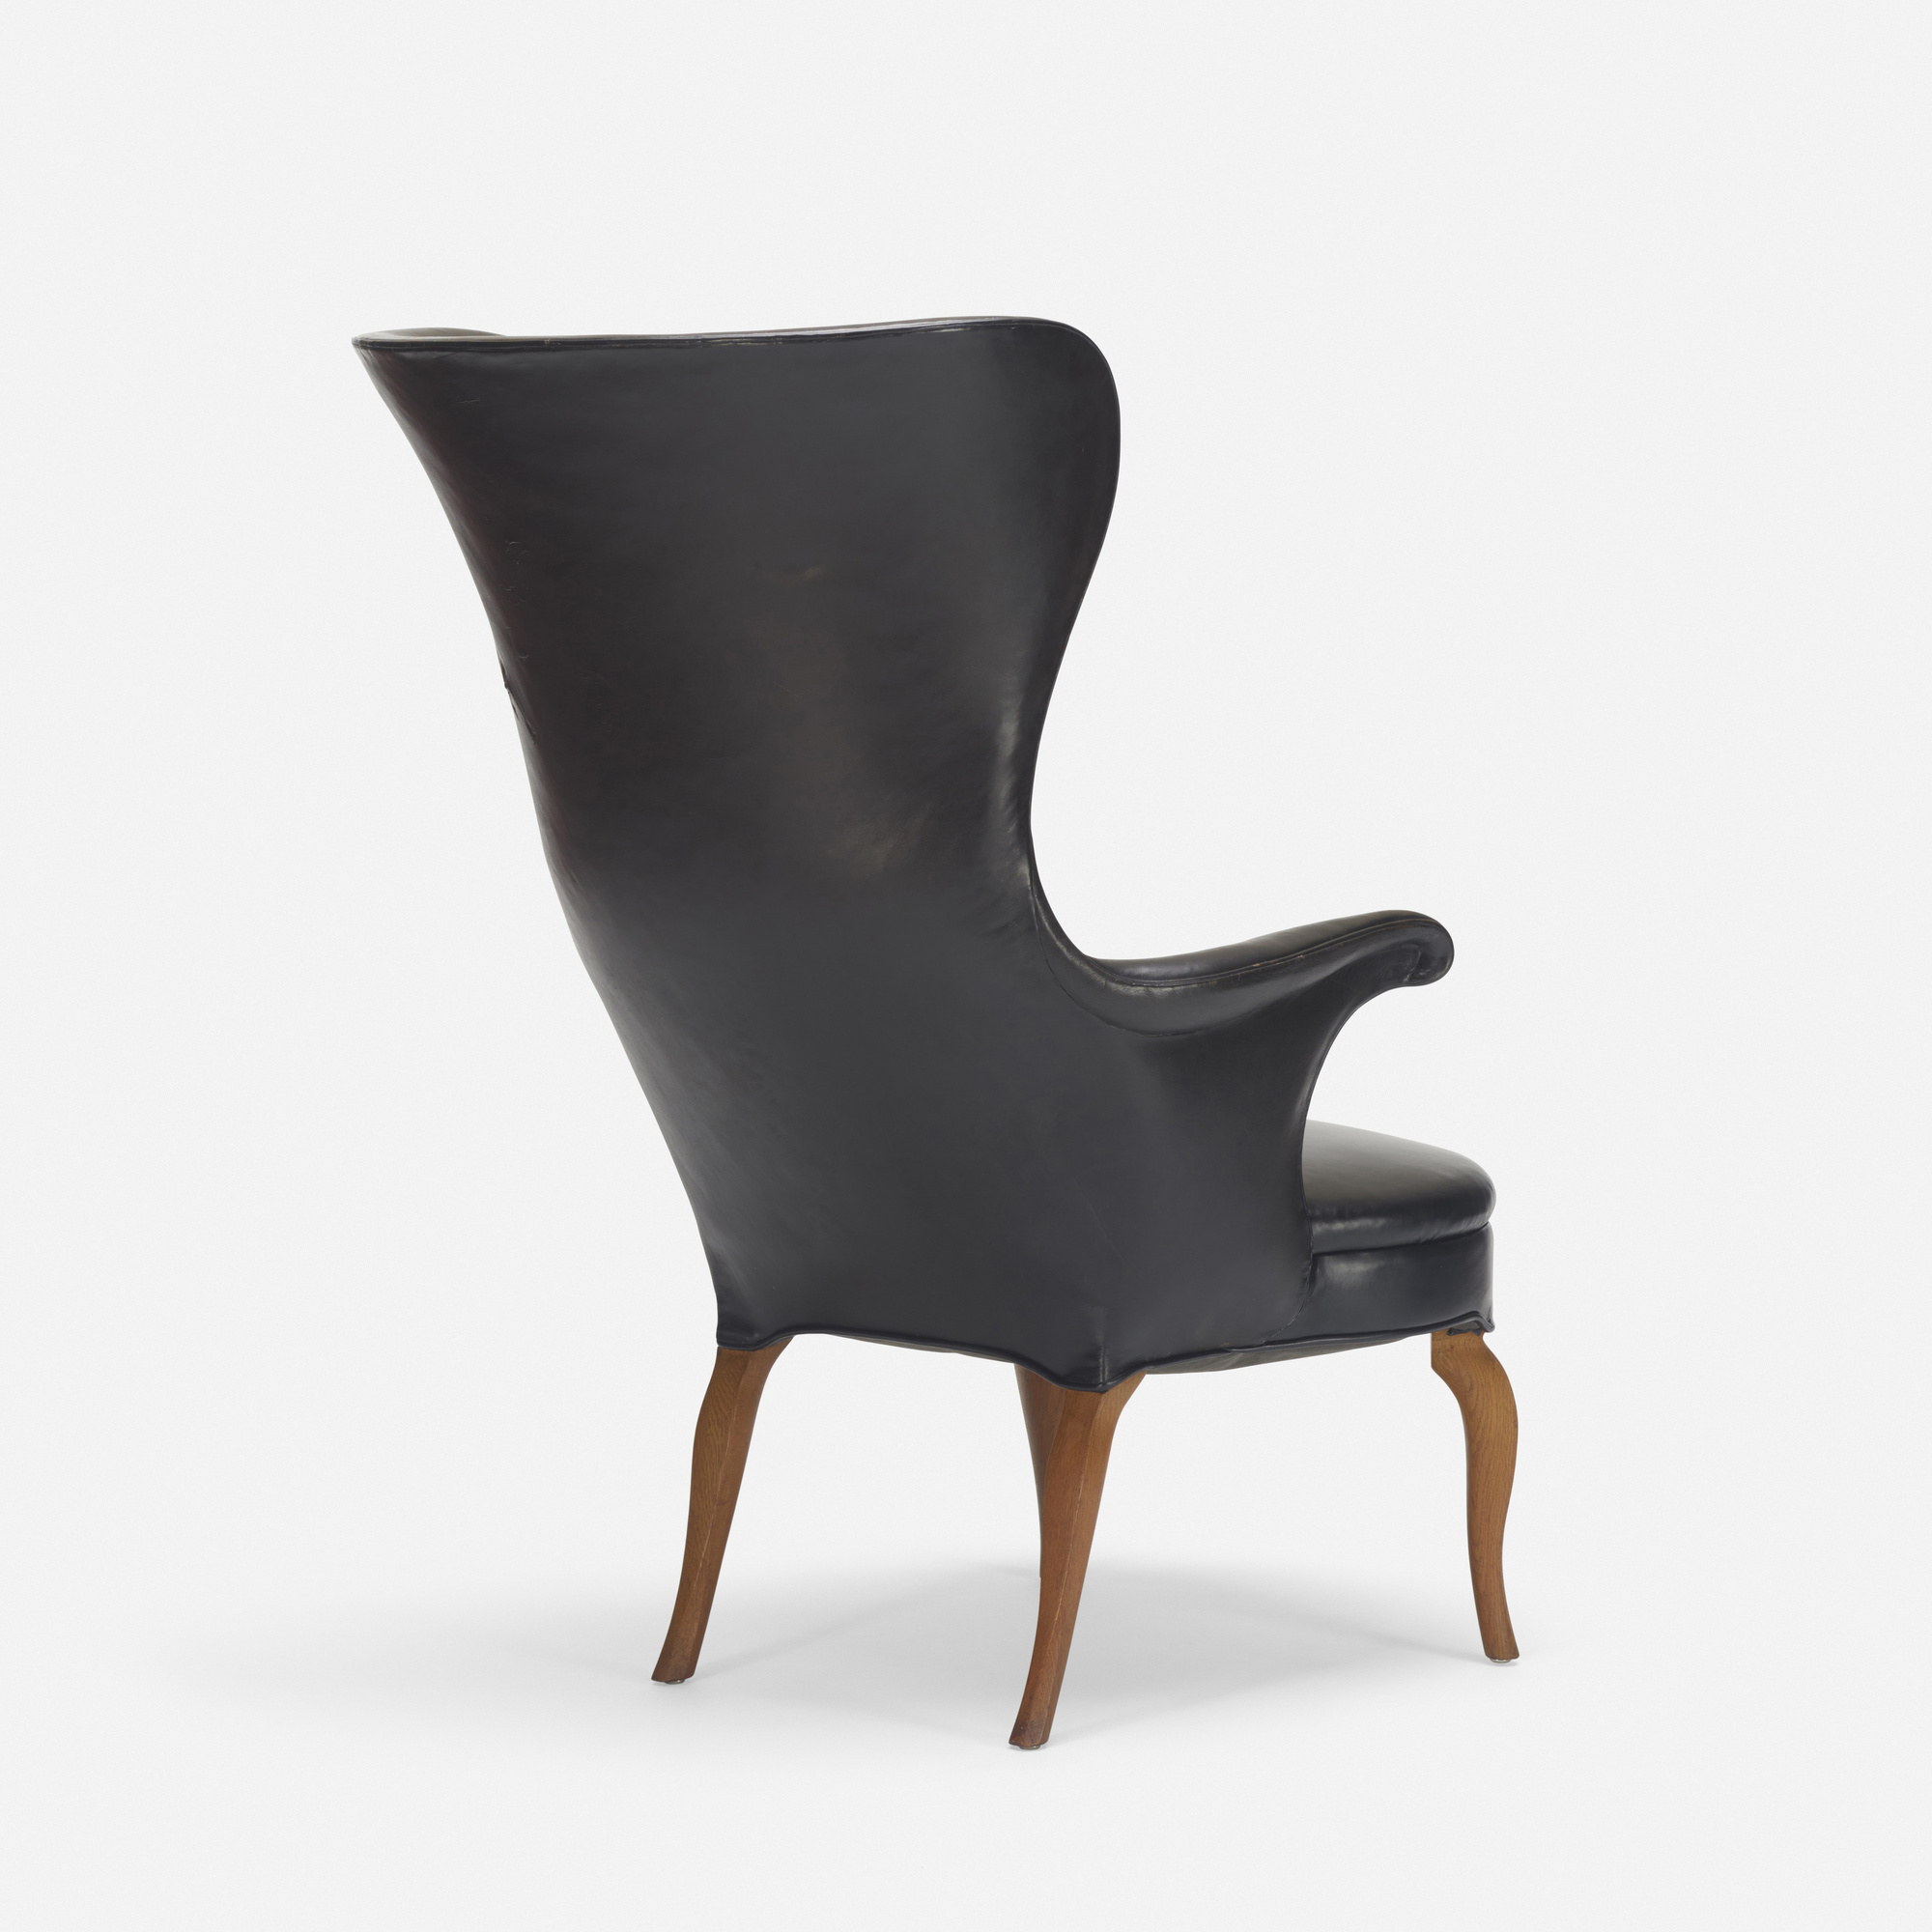 154 Frits Henningsen Wingback armchair Design 8 December